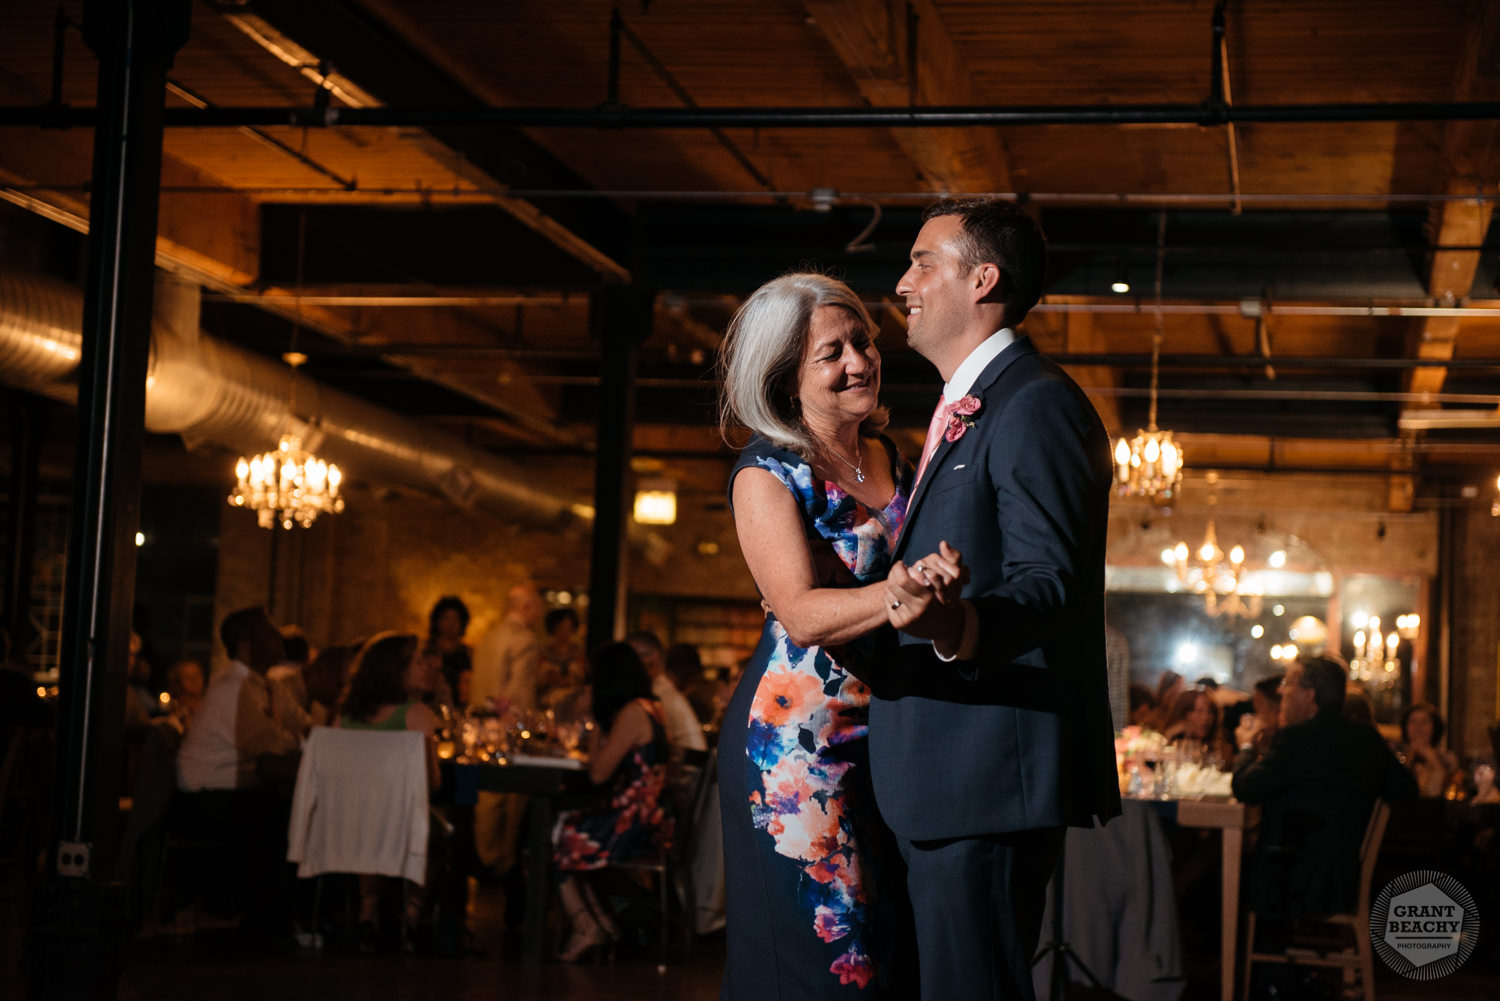 Chicago wedding photographer Grant Beachy-83.jpg